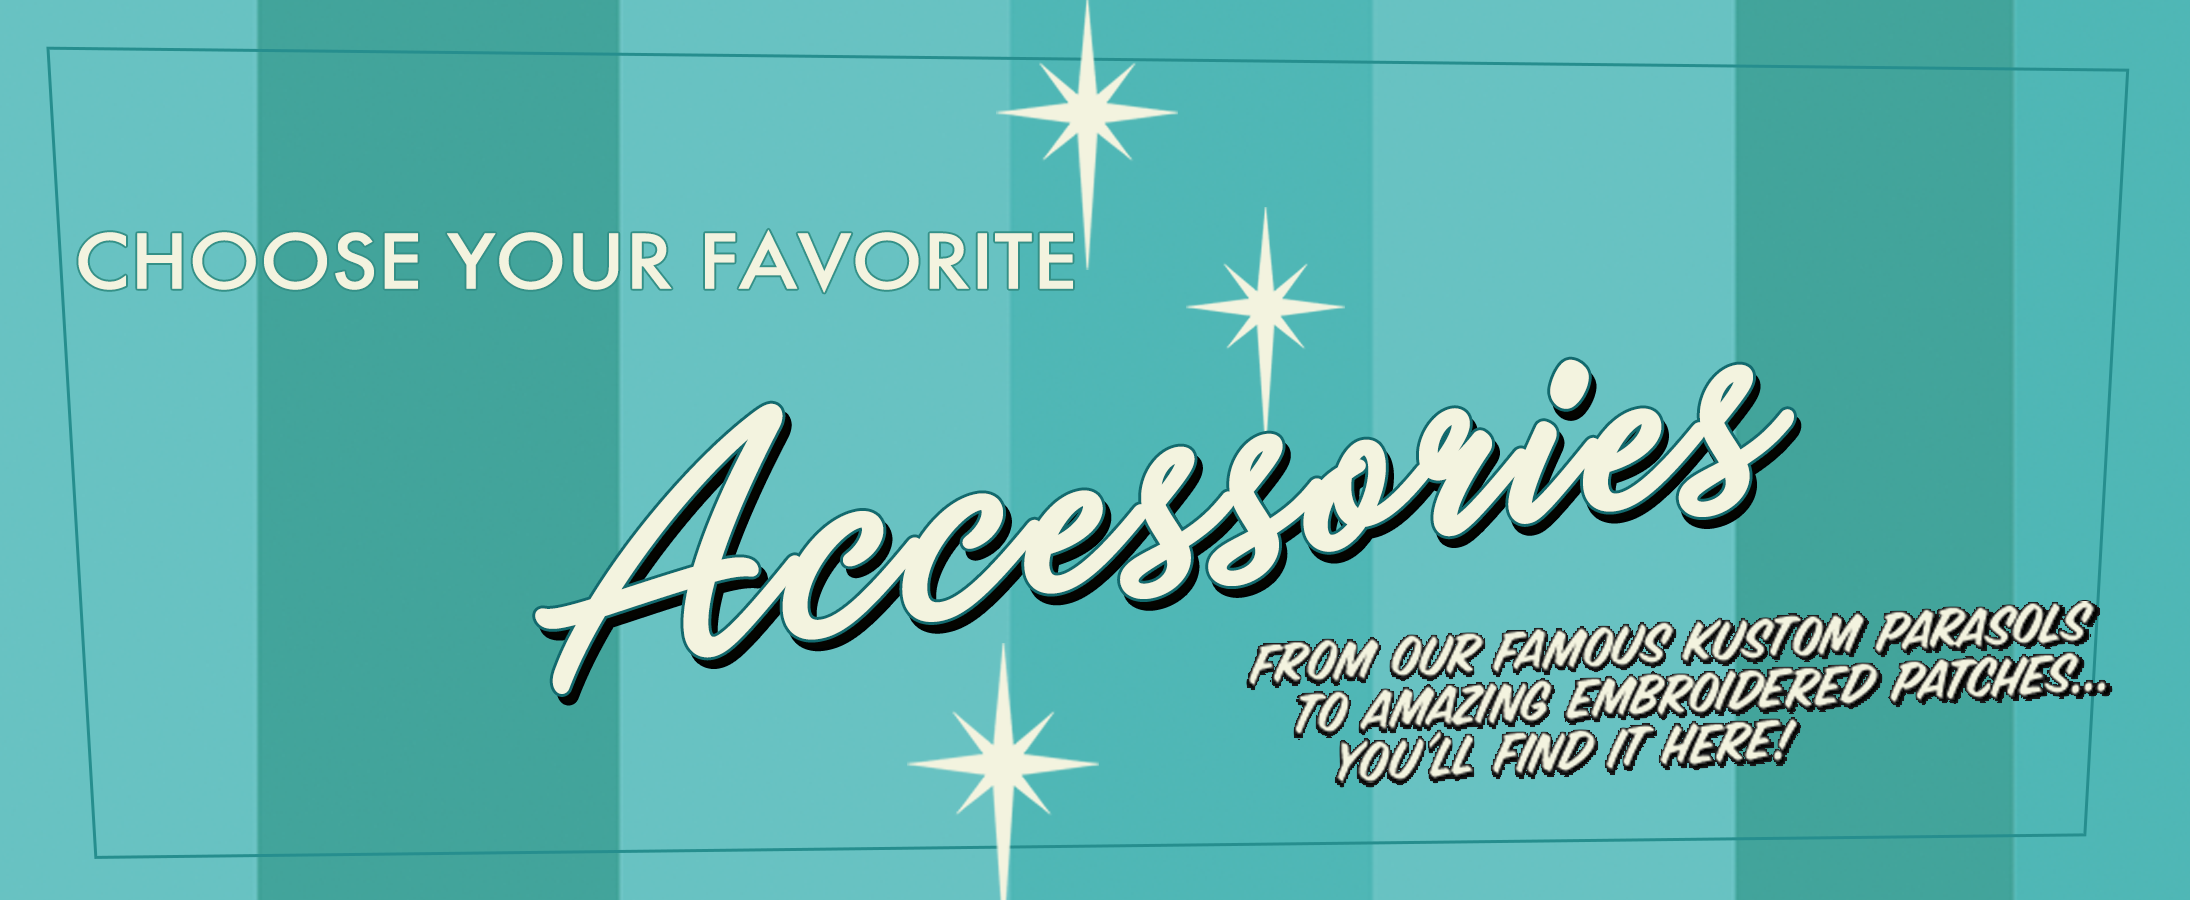 rev.accessories-header.png